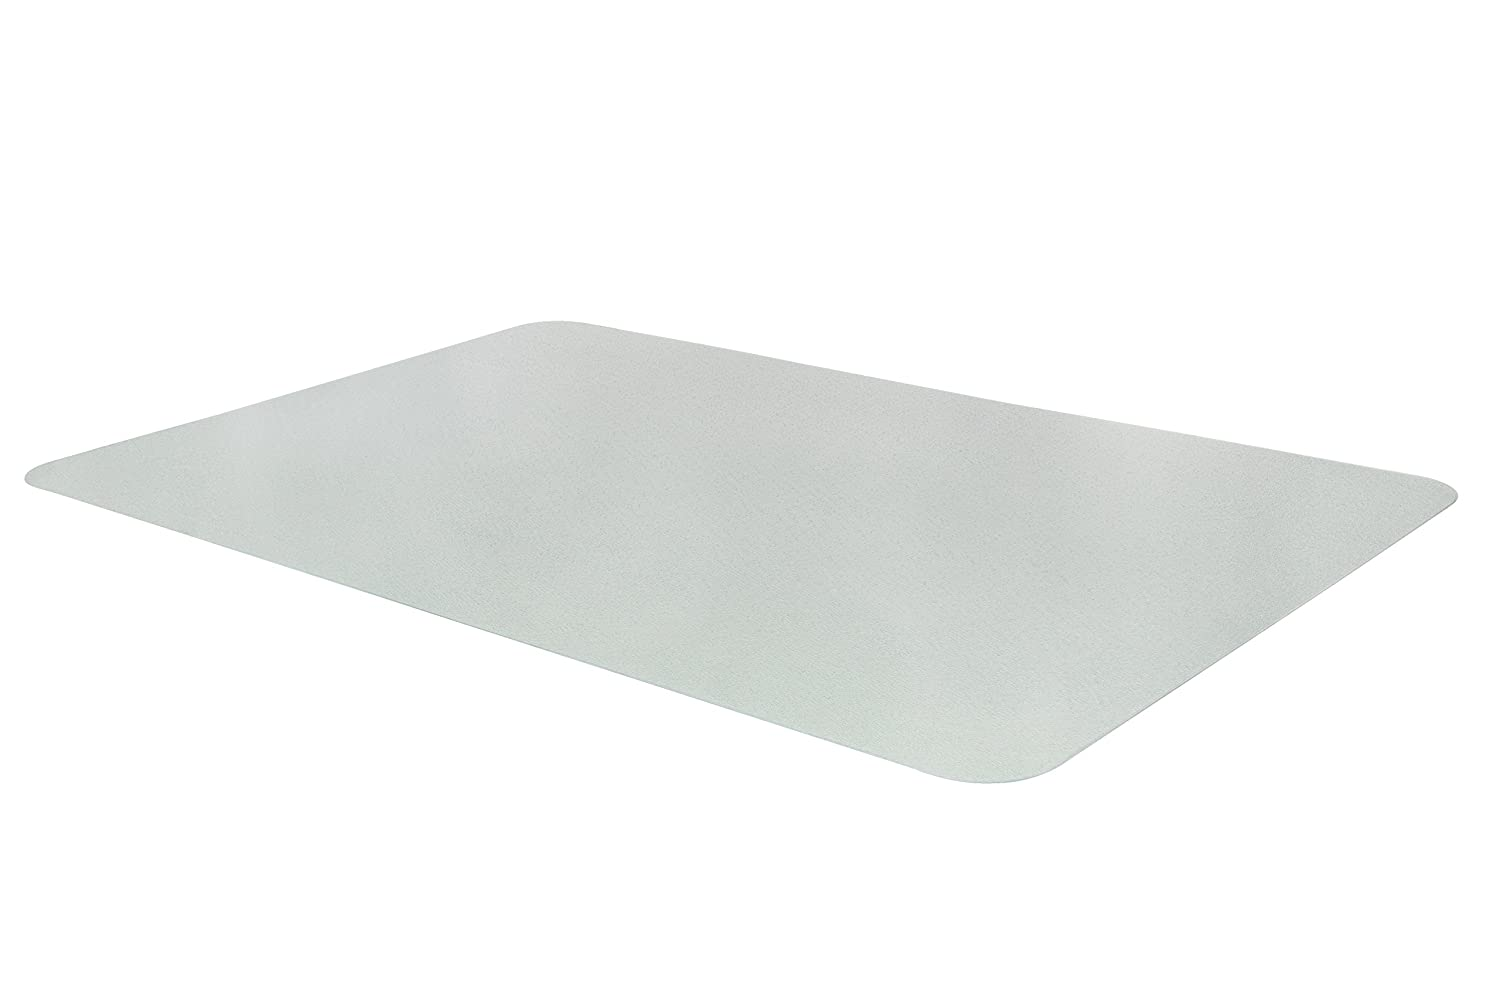 misento 200065 Protective Floor Mat - 40 x 60 cm - 100% PET (Polyethylene Terephthalate) - Transparent